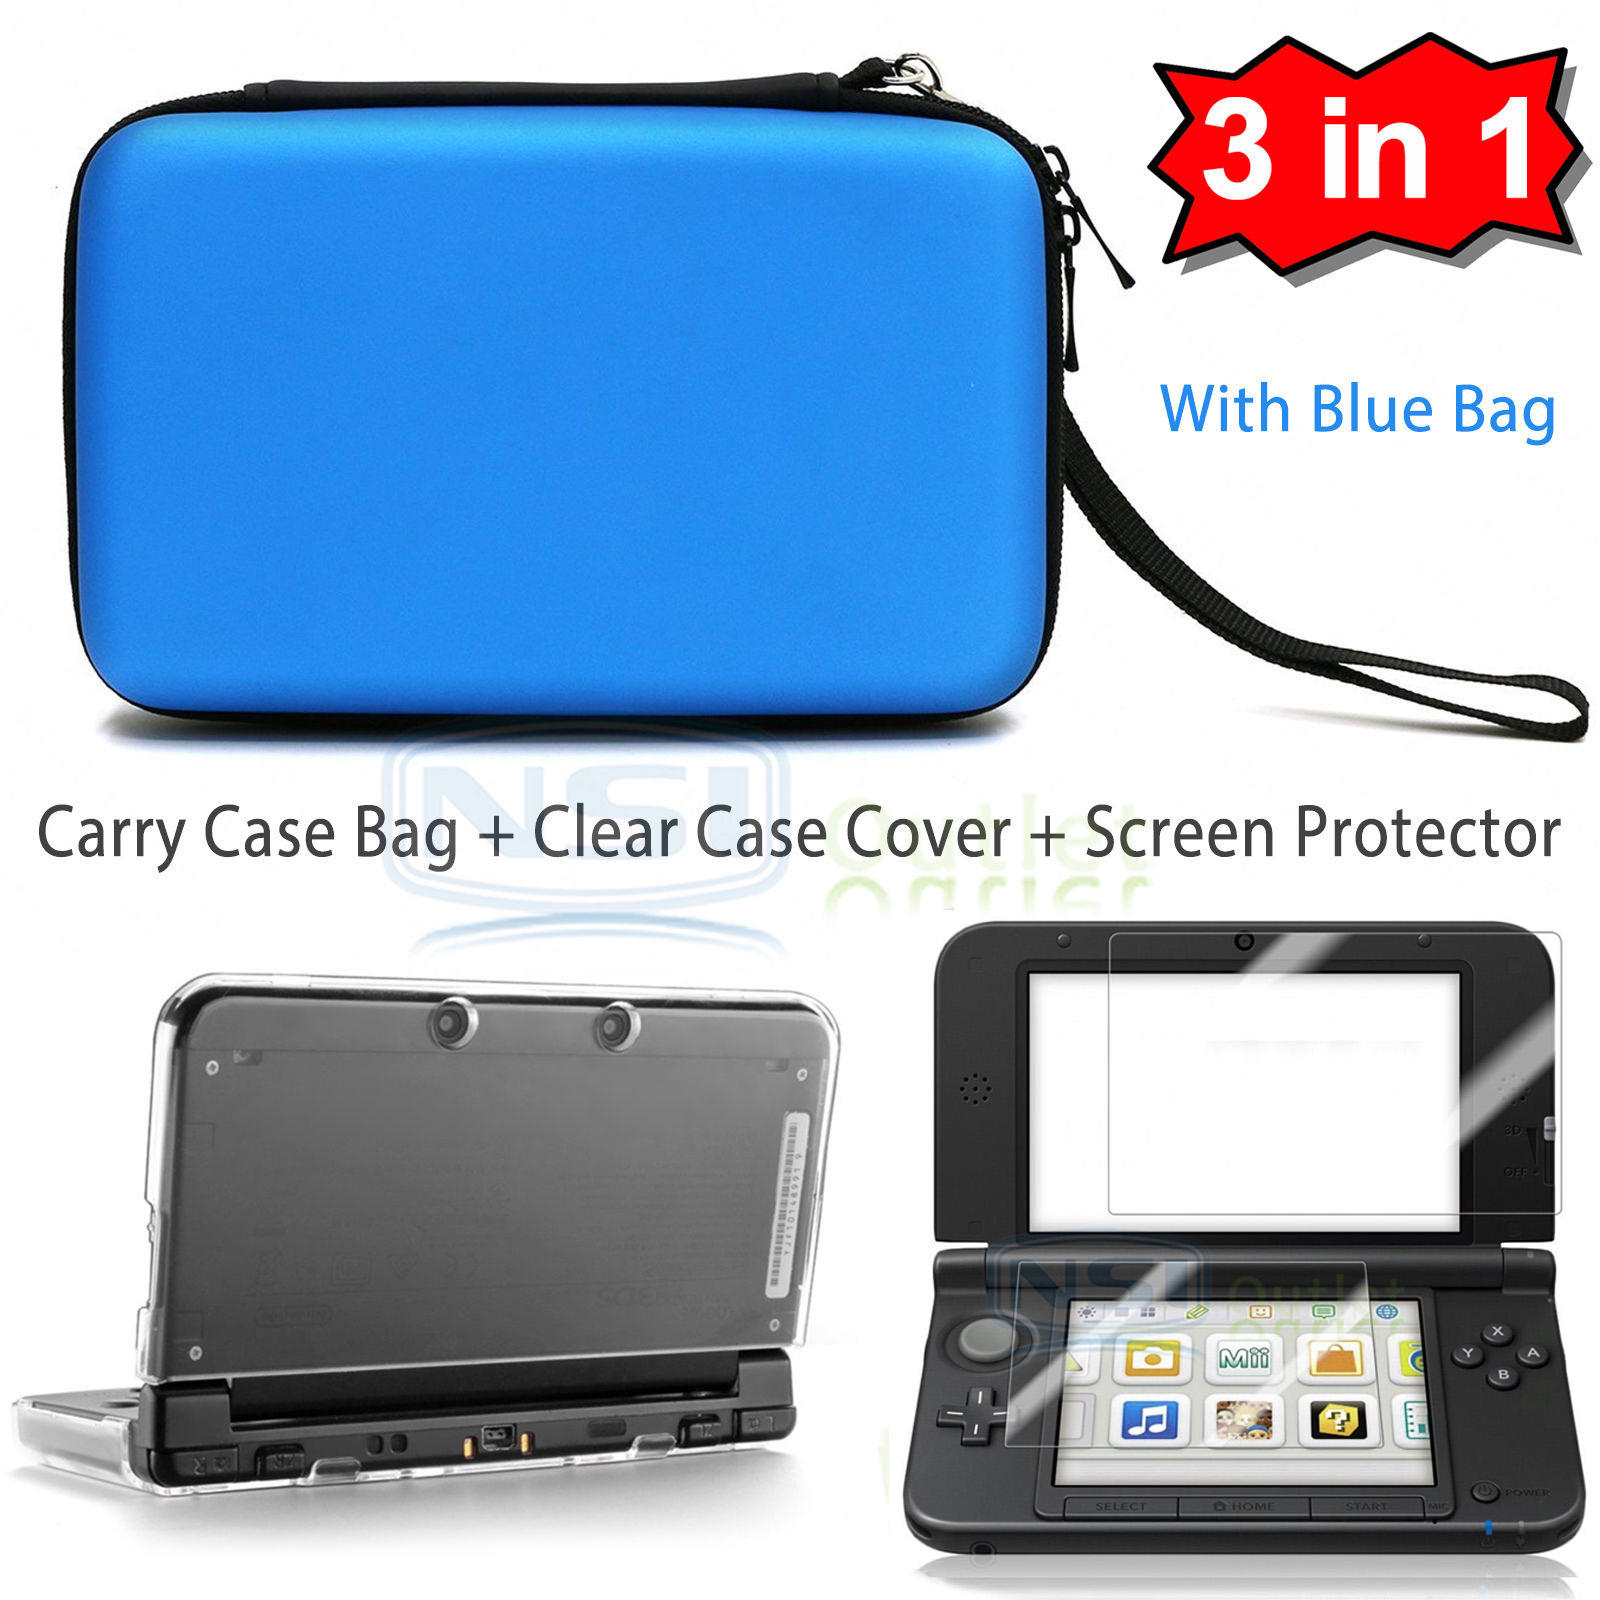 Carrying-Bag-Clear-Case-Cover-Screen-Protector-for-New-Nintendo-3DS-XL-LL-2015